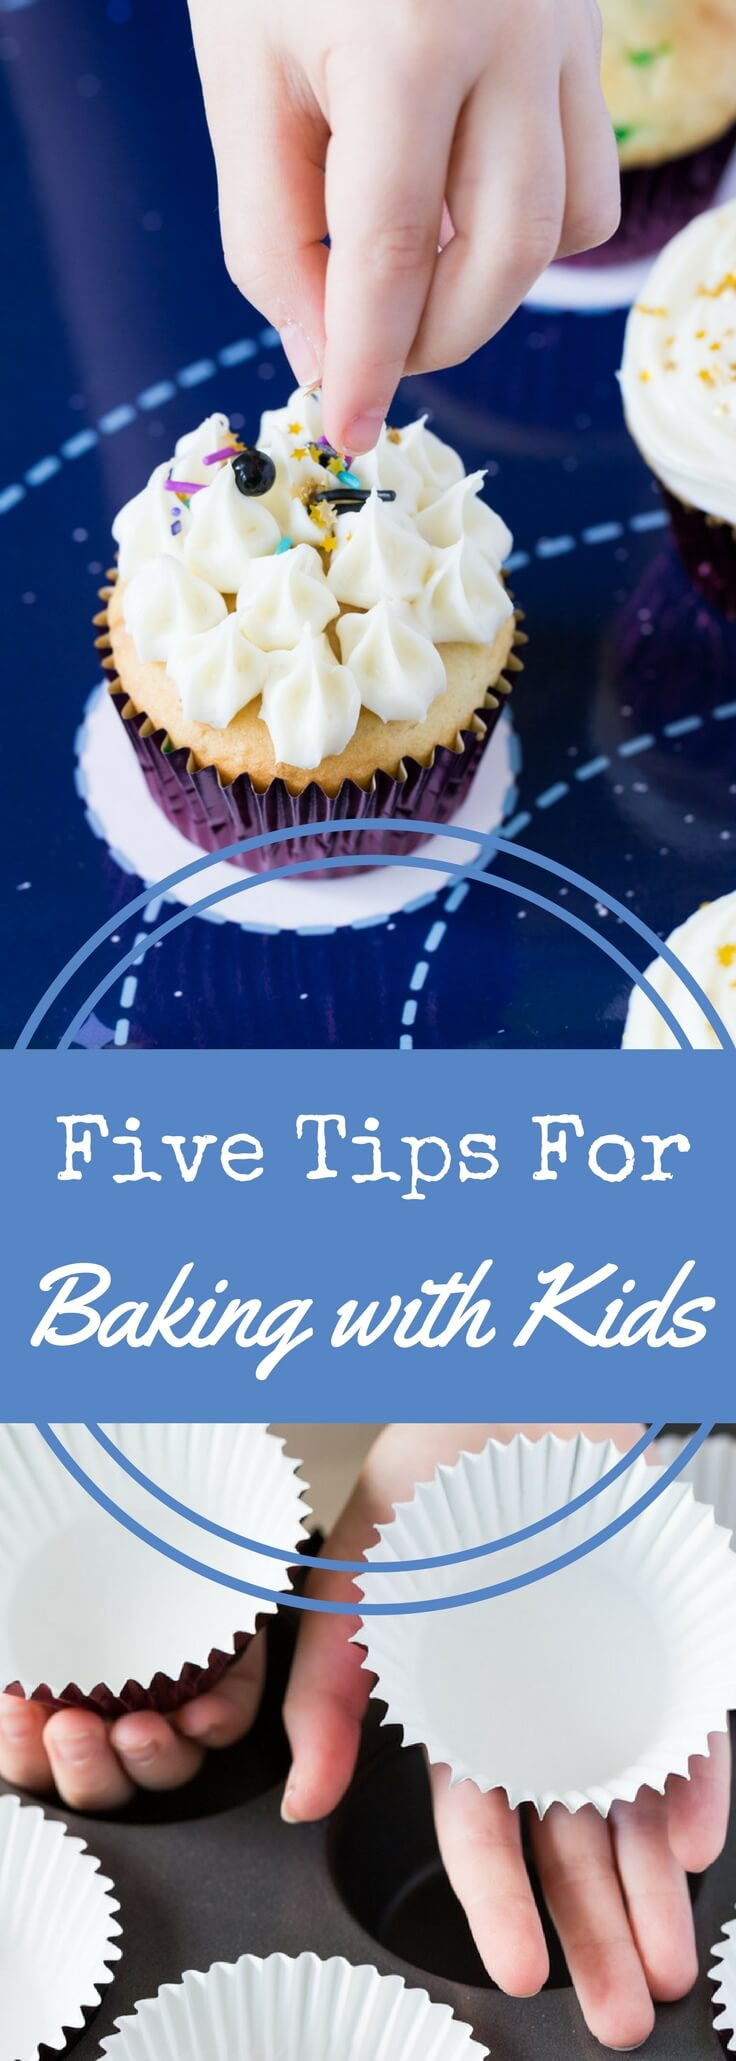 Baking with kids can be a joy—if you know how to make it go smoothly.  Get the five tips every baker should know for baking with children.